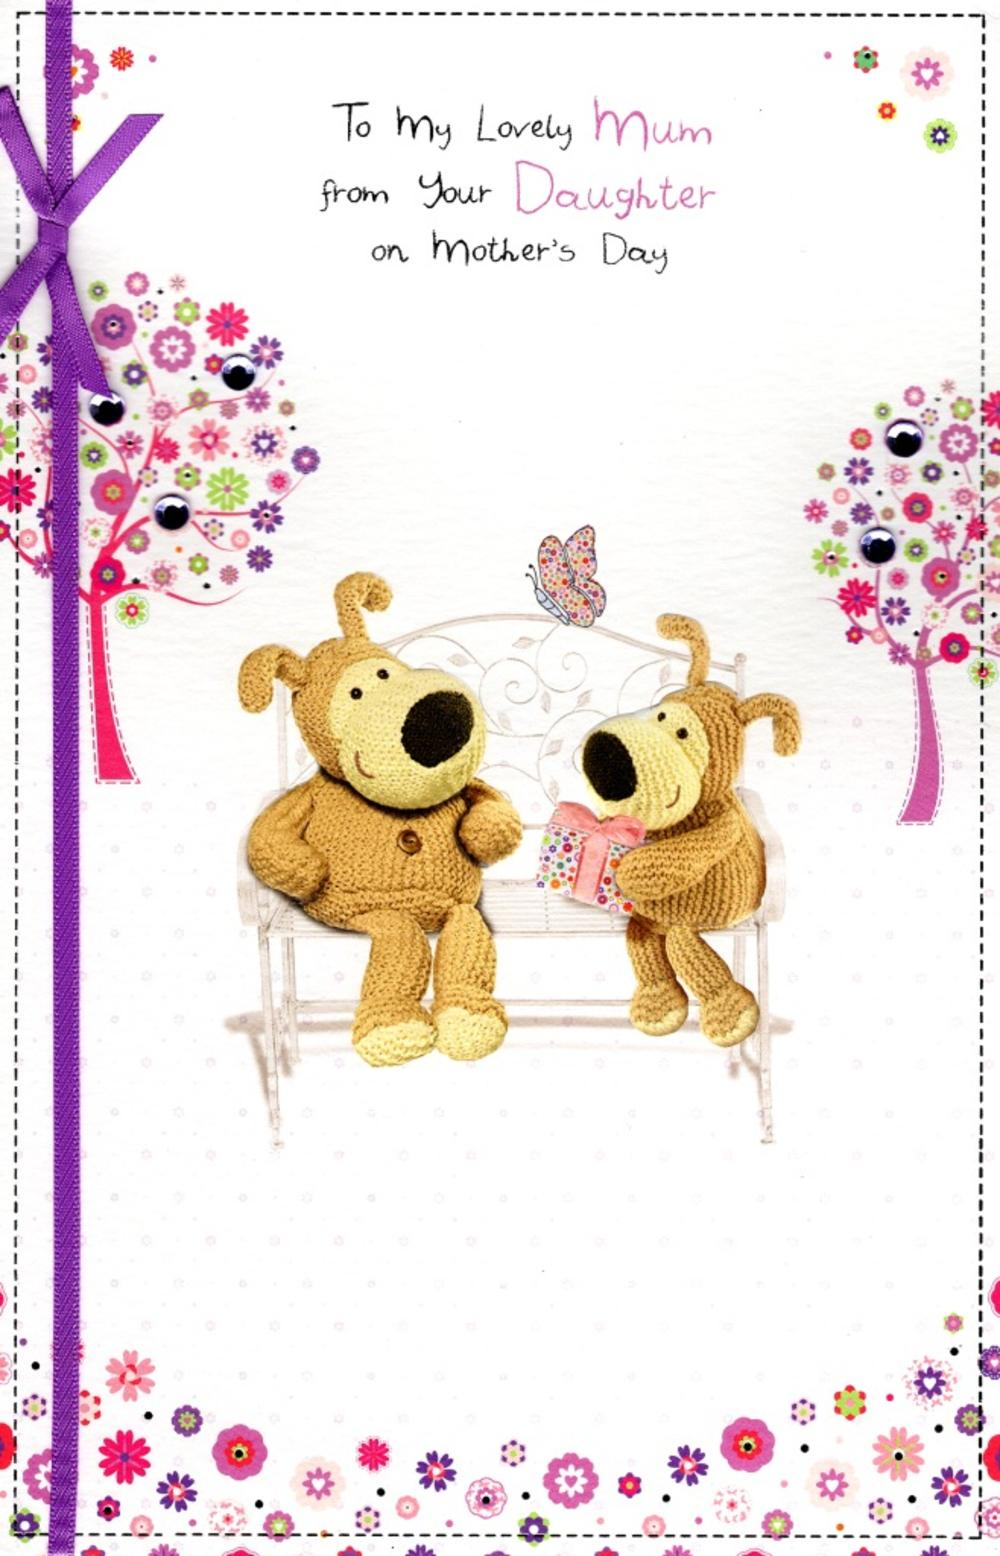 Boofle Mum From Daughter Mother's Day Card